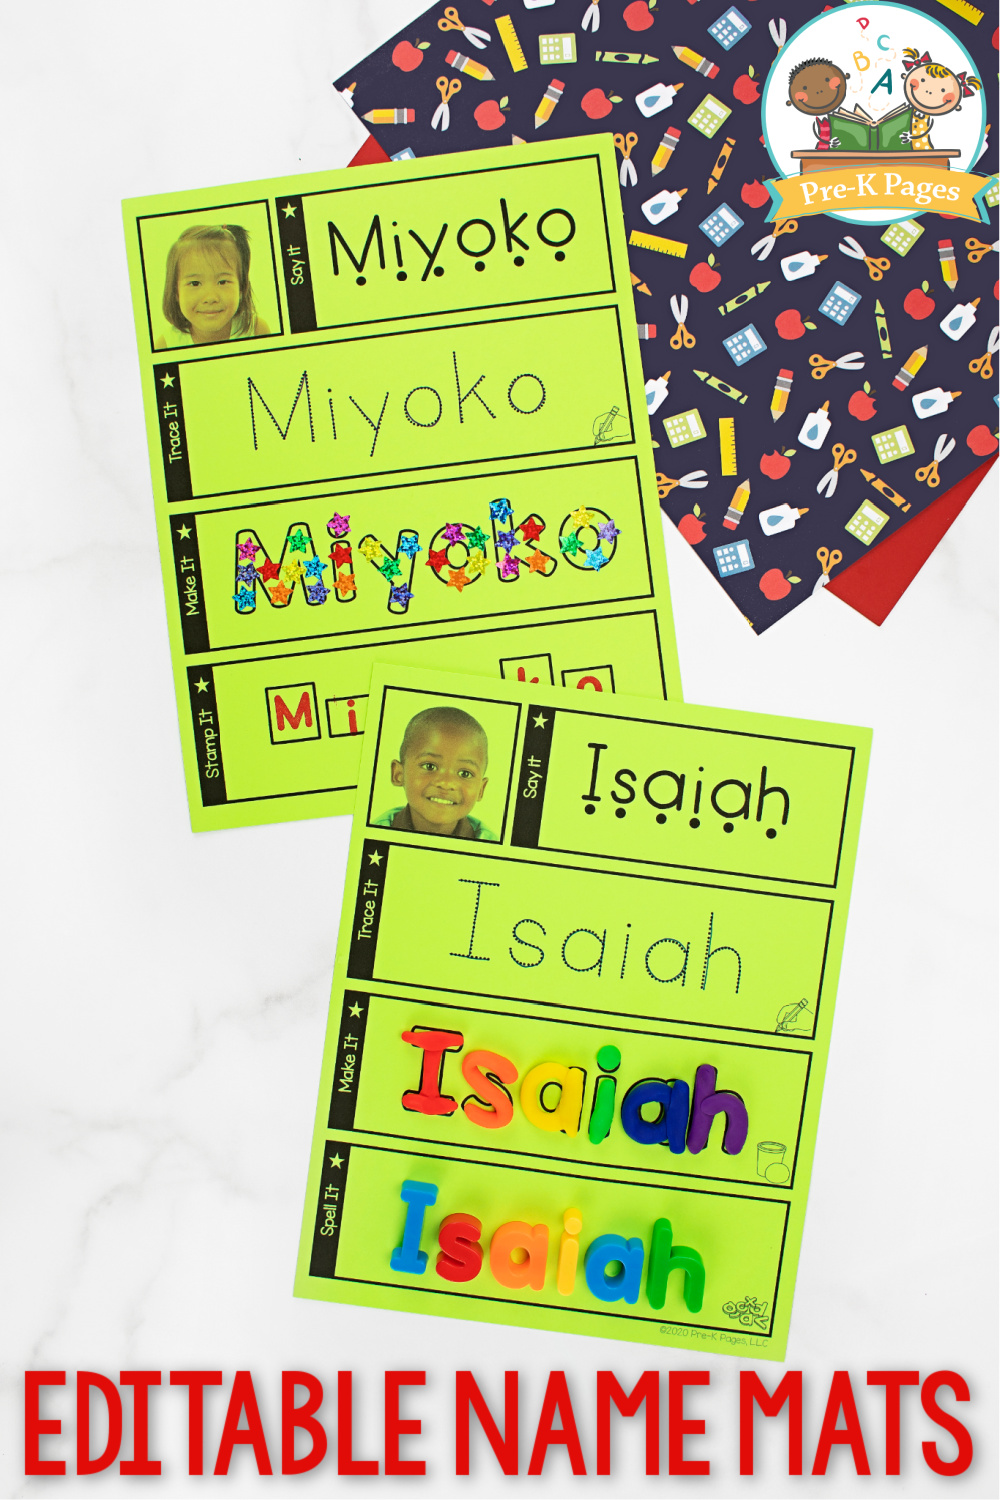 Editable Name Mats for Preschool